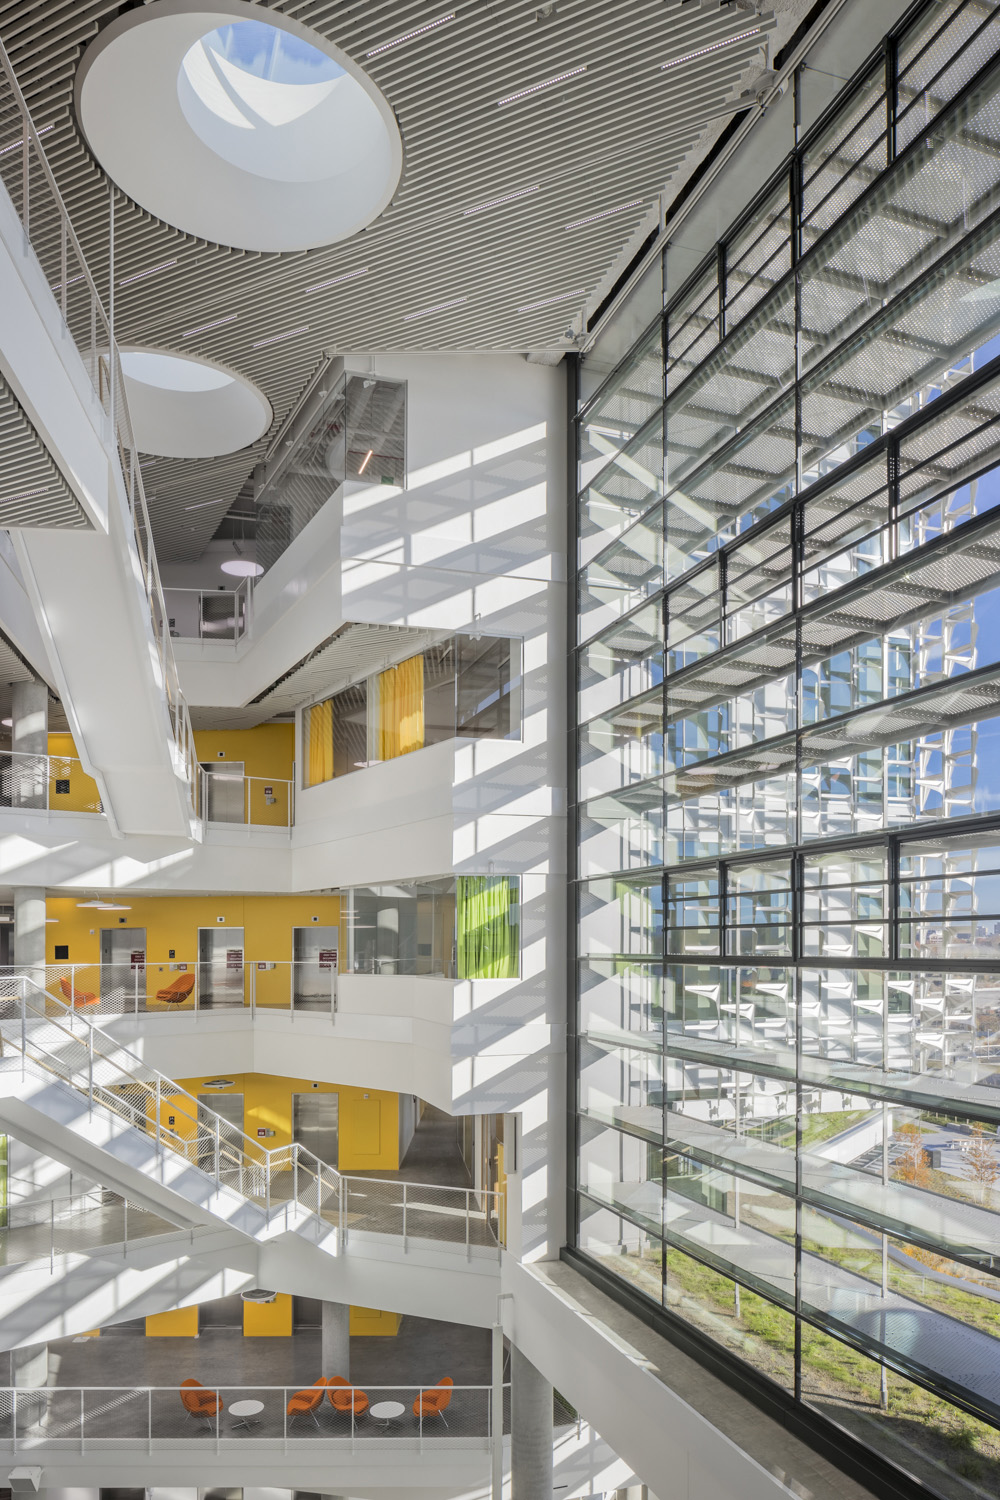 Two atria flood the interior with daylight, facilitate natural ventilation and serve as the communicative heart of the complex. Brad Feinknopf